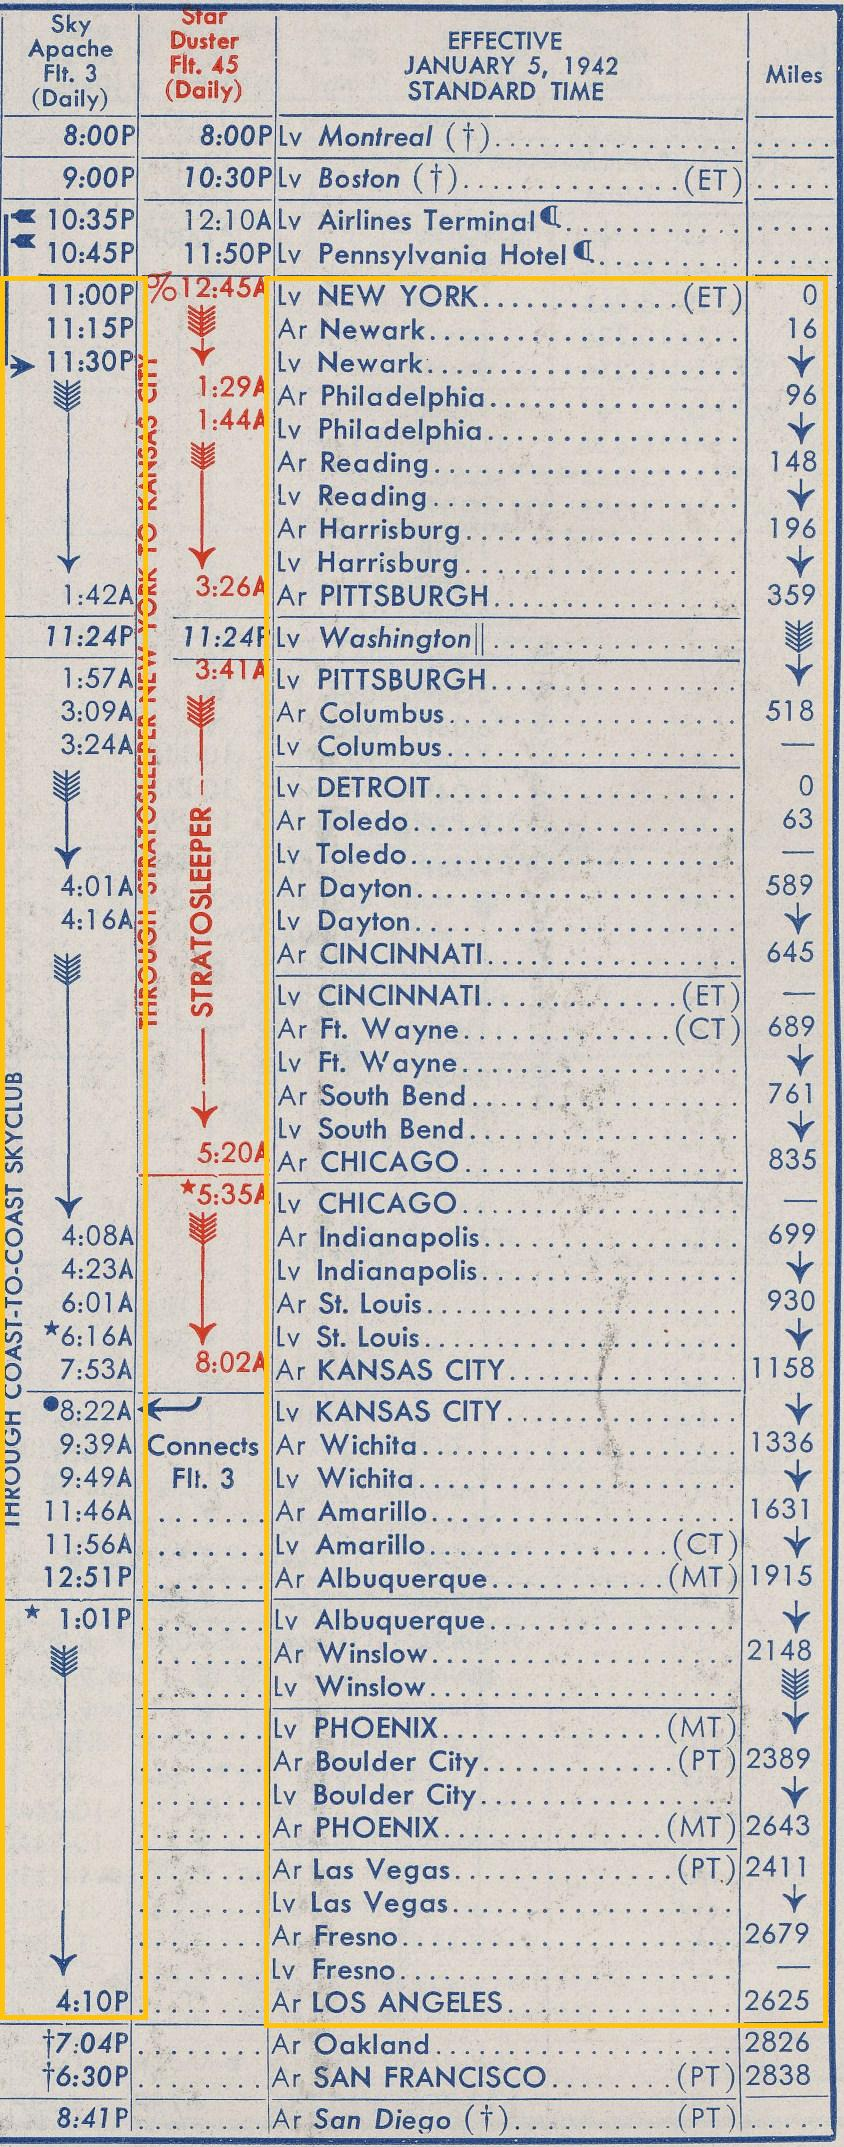 "This page from the TWA timetable above dated January 5, 1942 lists TWA Flight 3 as the ""Sky Apache"", a Coast to Coast flight that originated from New York City with stops in: Newark, Pittsburgh, Columbus, Dayton, Indianapolis, St Louis, Kansas City, Wichita, Amarillo, Albuquerque, and direct to Los Angeles/Burbank. <br /> <br /> On January 16th 1942, aircraft delays coupled by fuel and weight issues will alter the flight's scheduled course to Las Vegas, Nevada."